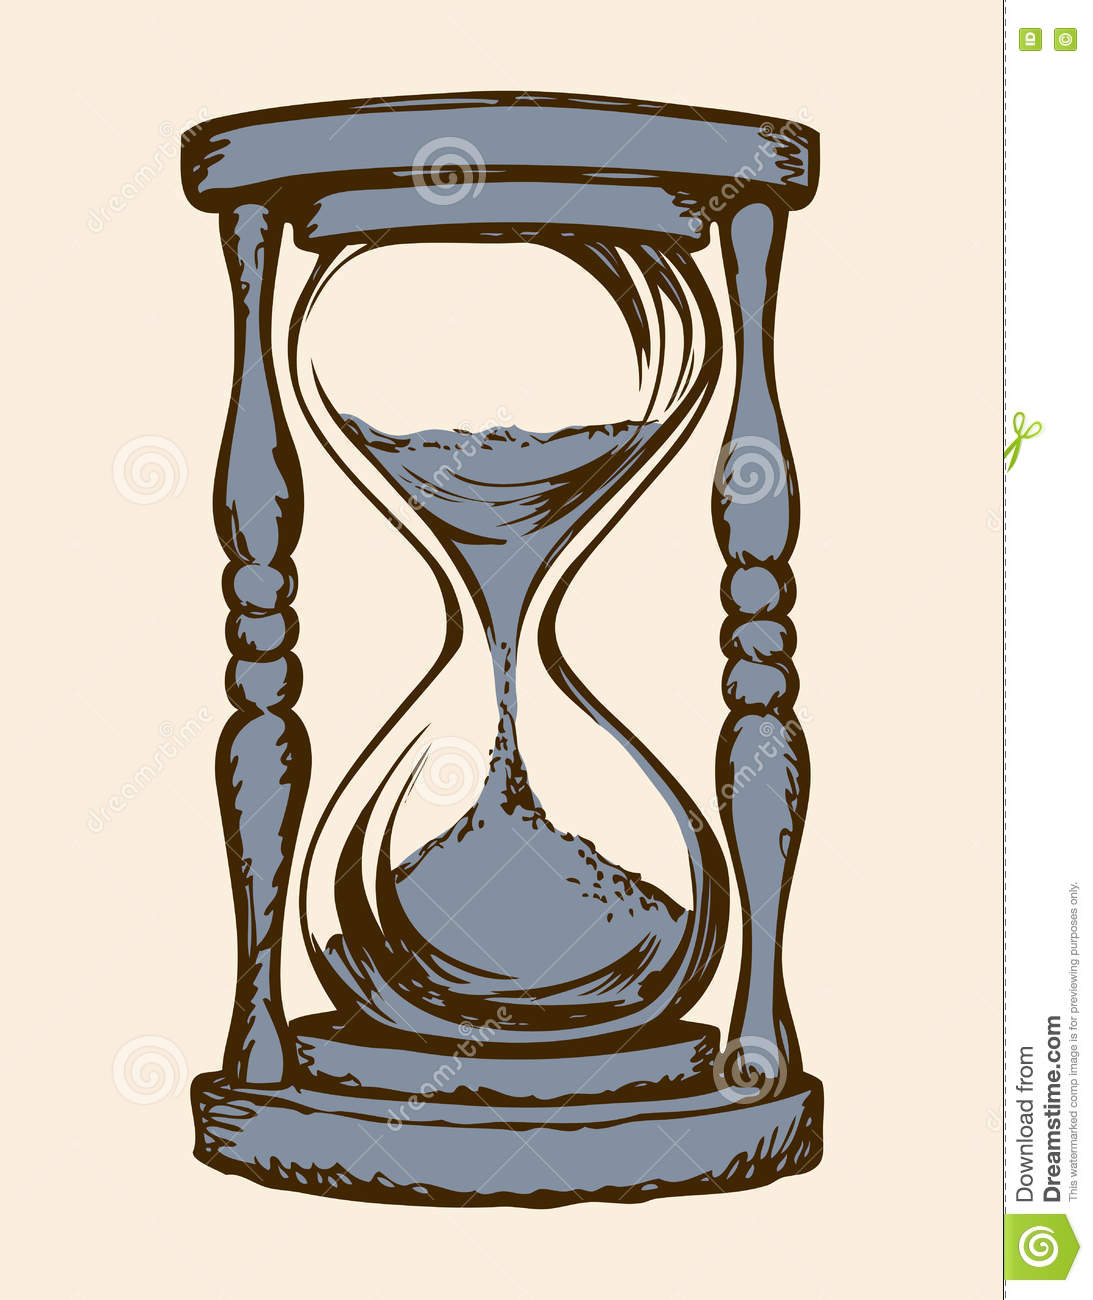 Hourglass drawing  Hourglass. Vector Drawing Stock Vector - Image: 76772588